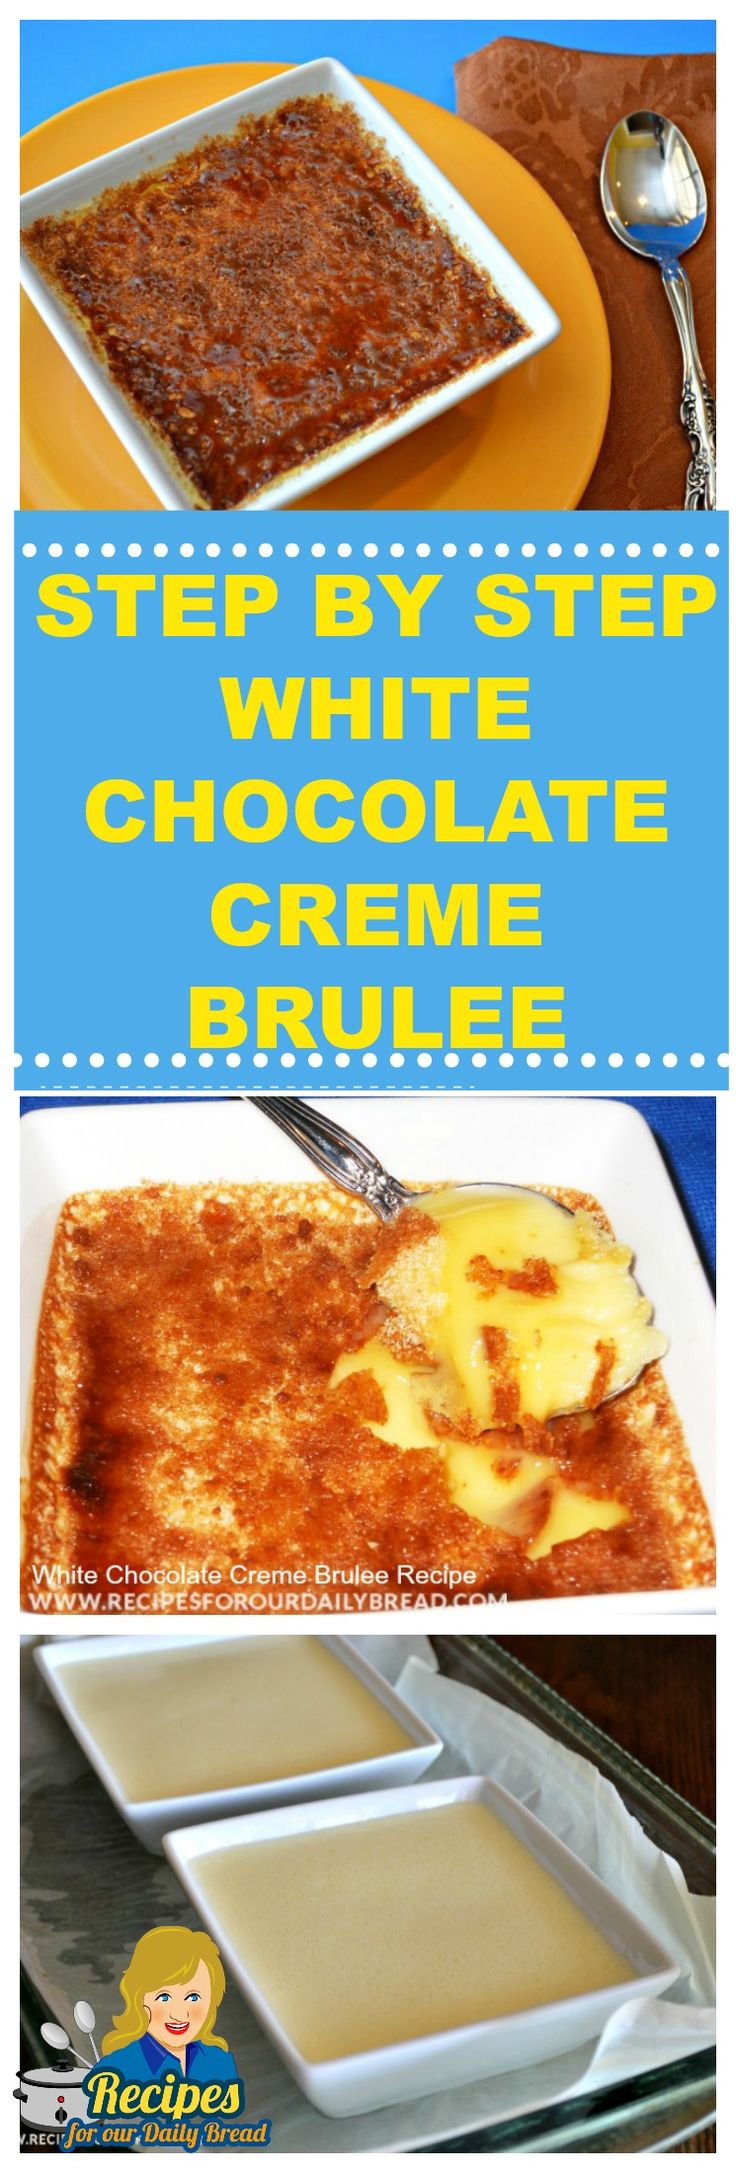 White Chocolate Creme Brulee Recipe -This White Chocolate Creme Brulee is one of the best desserts I have ever eaten.  Do you want an extra special dessert? Date Night? Valentine's Day? Anniversary? Birthday? This is the dessert for you. This post will give you Step By Step instructions to making an over the top perfect Creme Brulee.